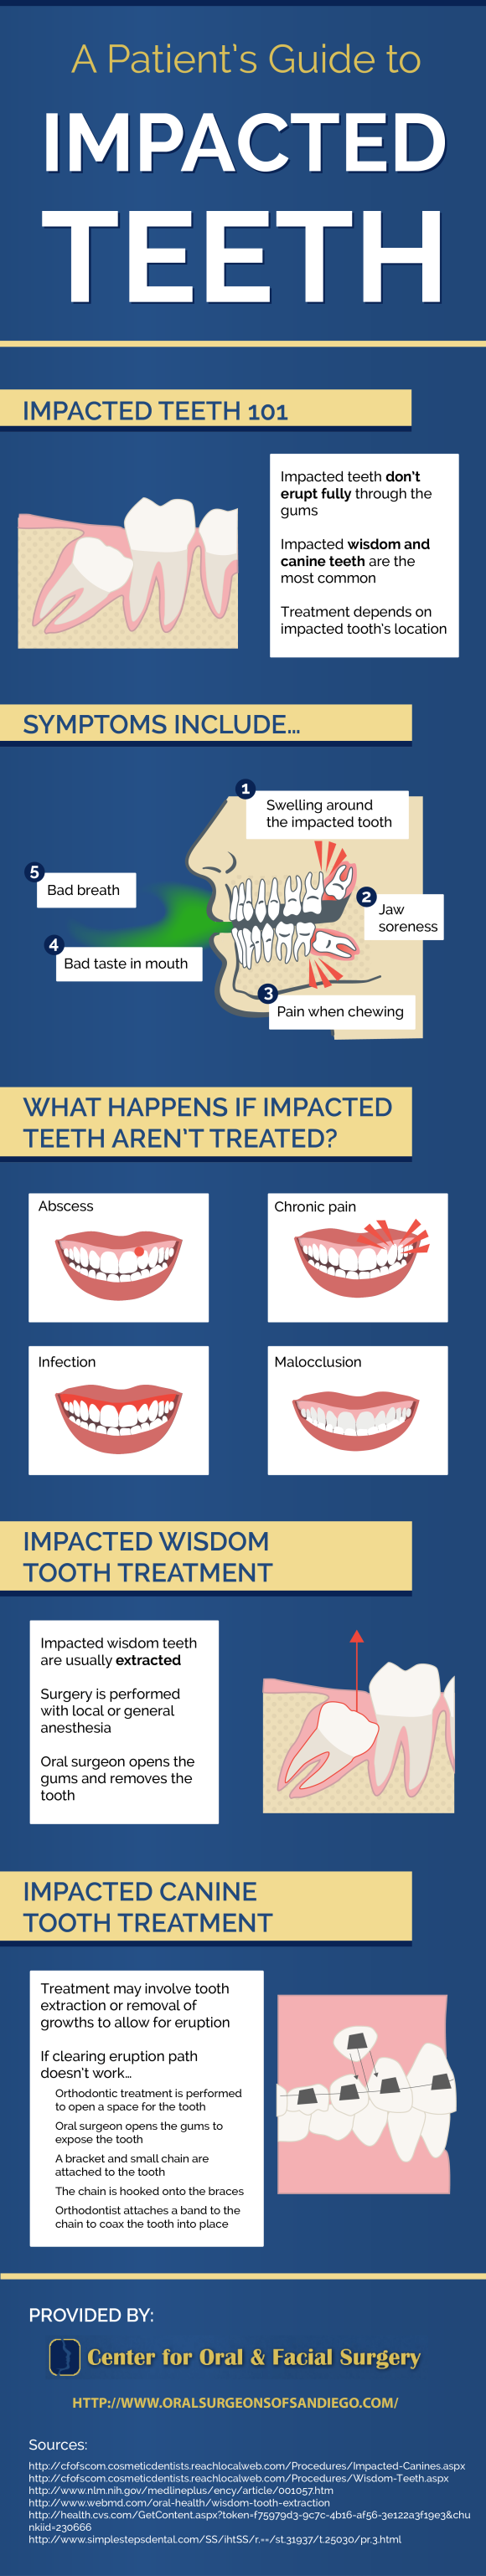 tooth whitening in cosmetic dentistry essay Affordable dentists in your neighborhood find a local dentist who offers general, cosmetic, speciality, and emergency dentistry with flexible payment options.